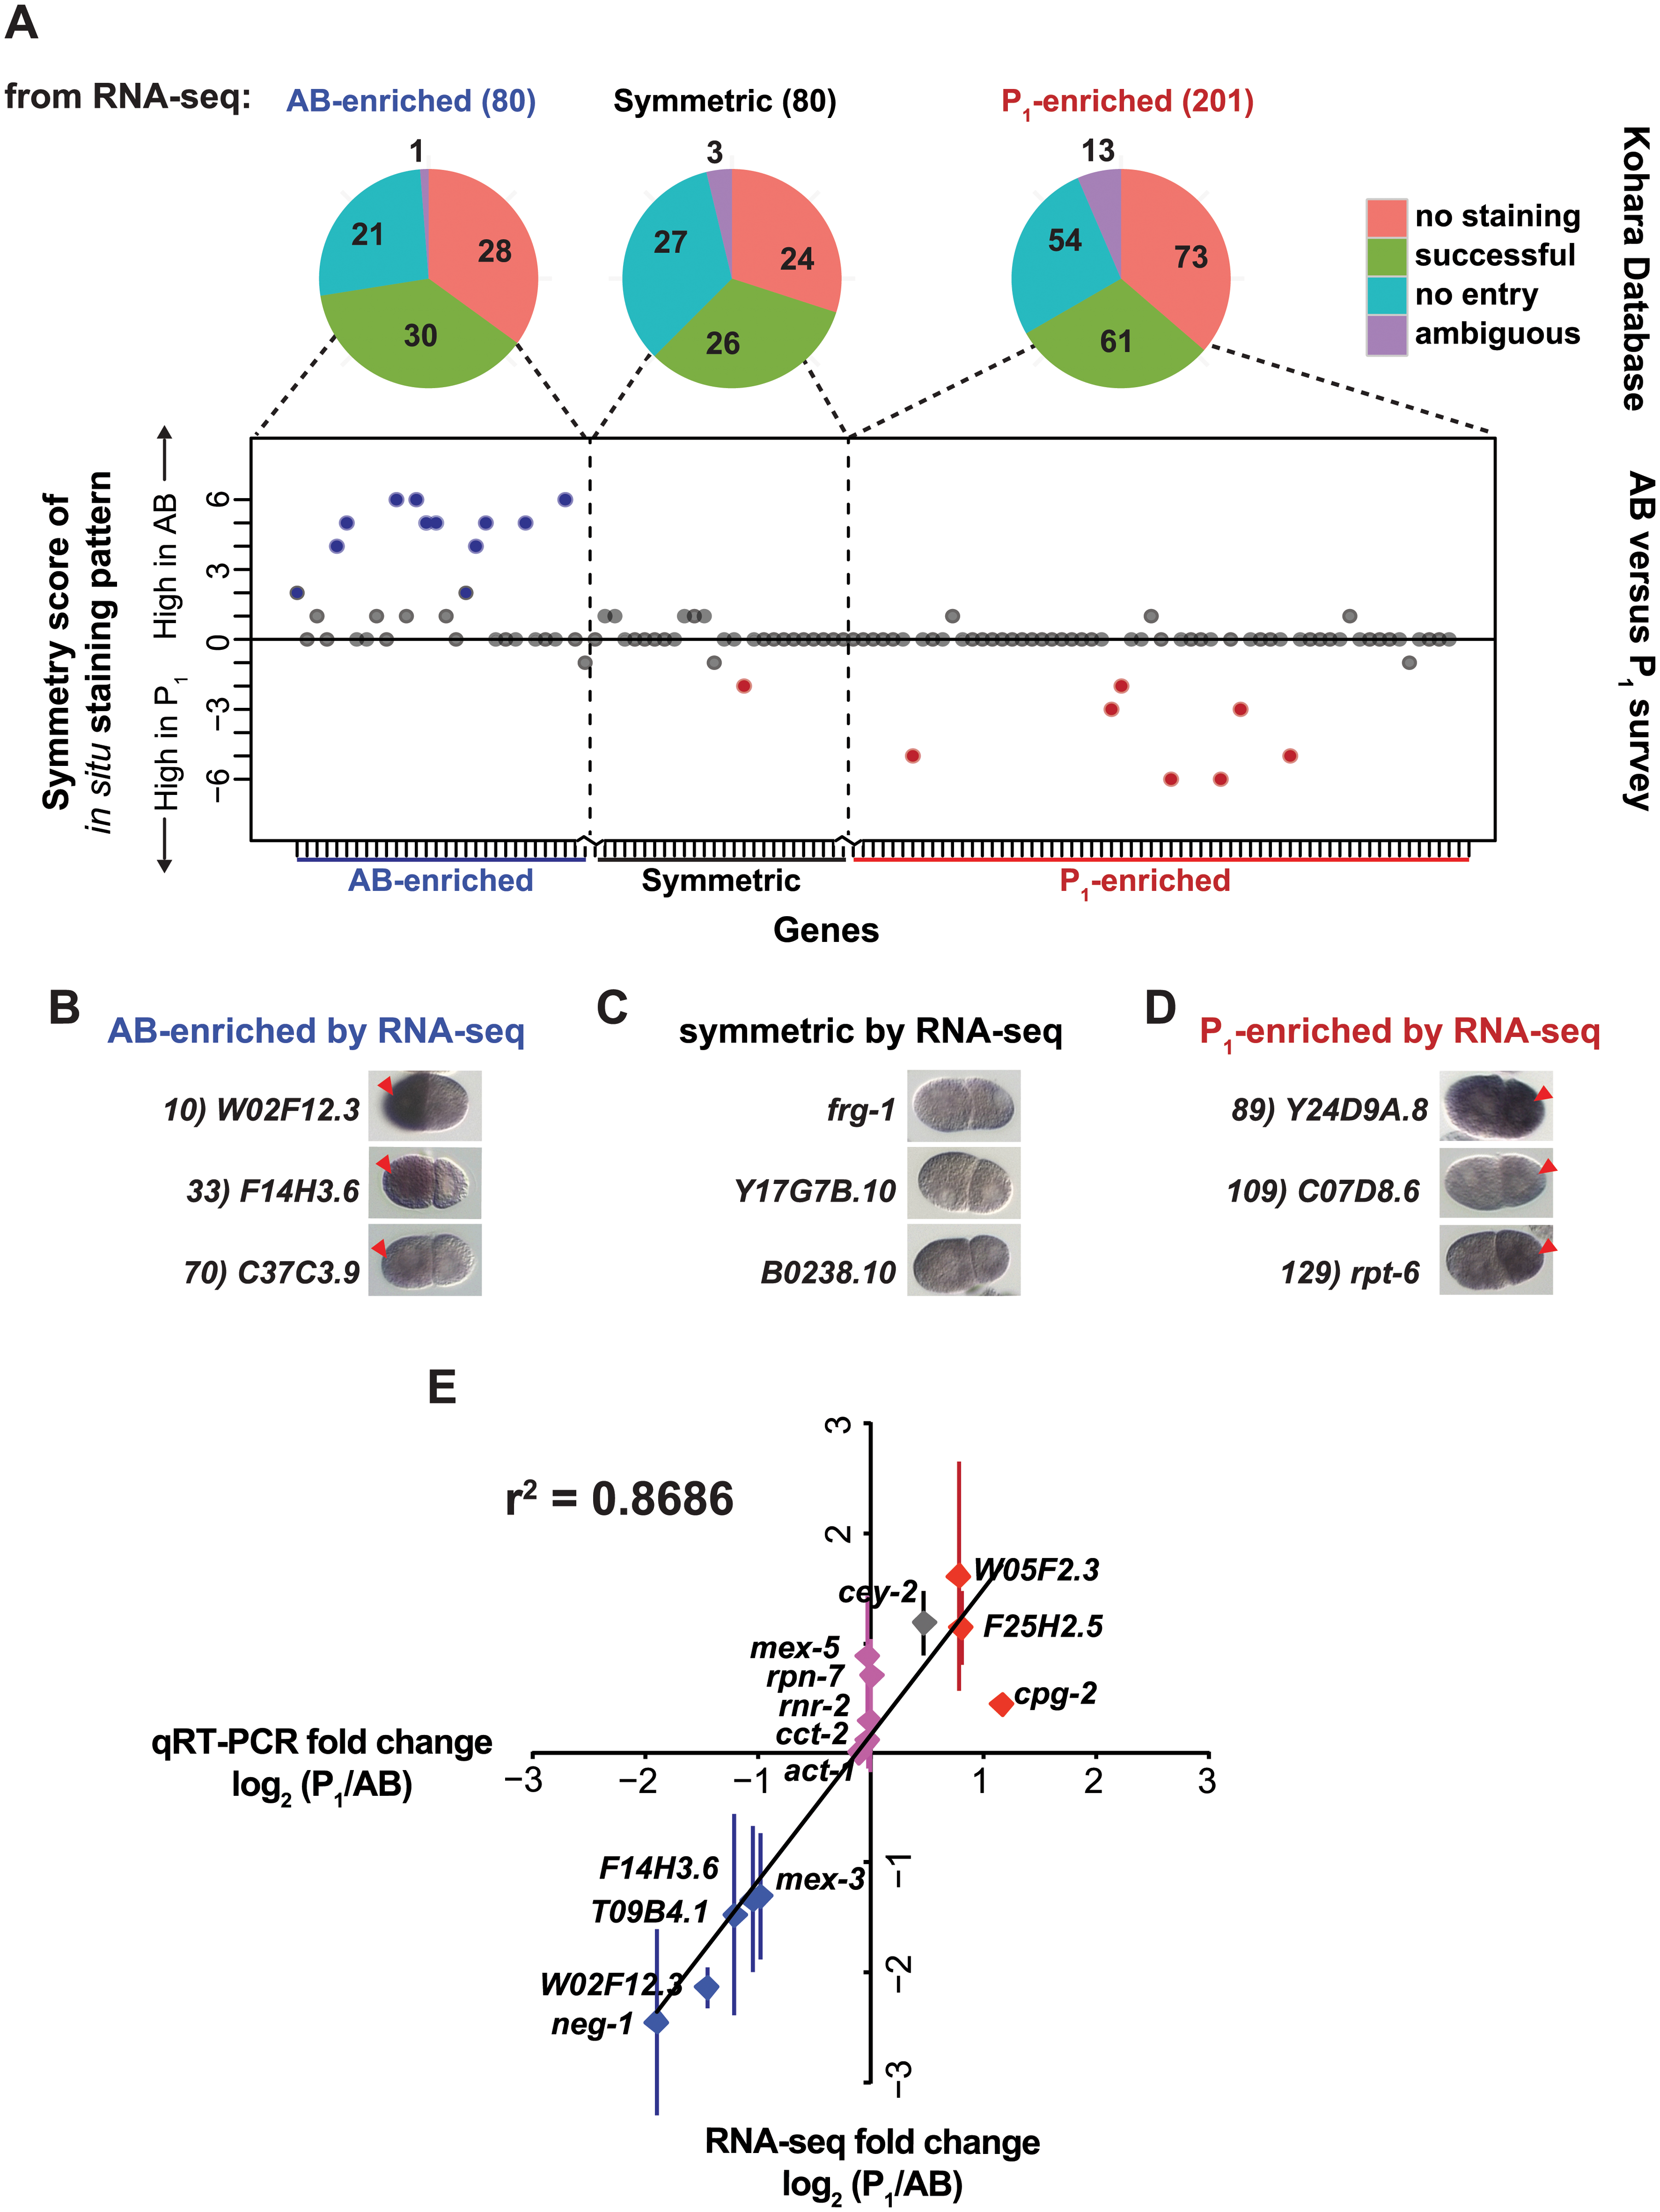 Complementary methods, <i>in situ</i> hybridization and qRT-PCR, support RNA-seq measurements.